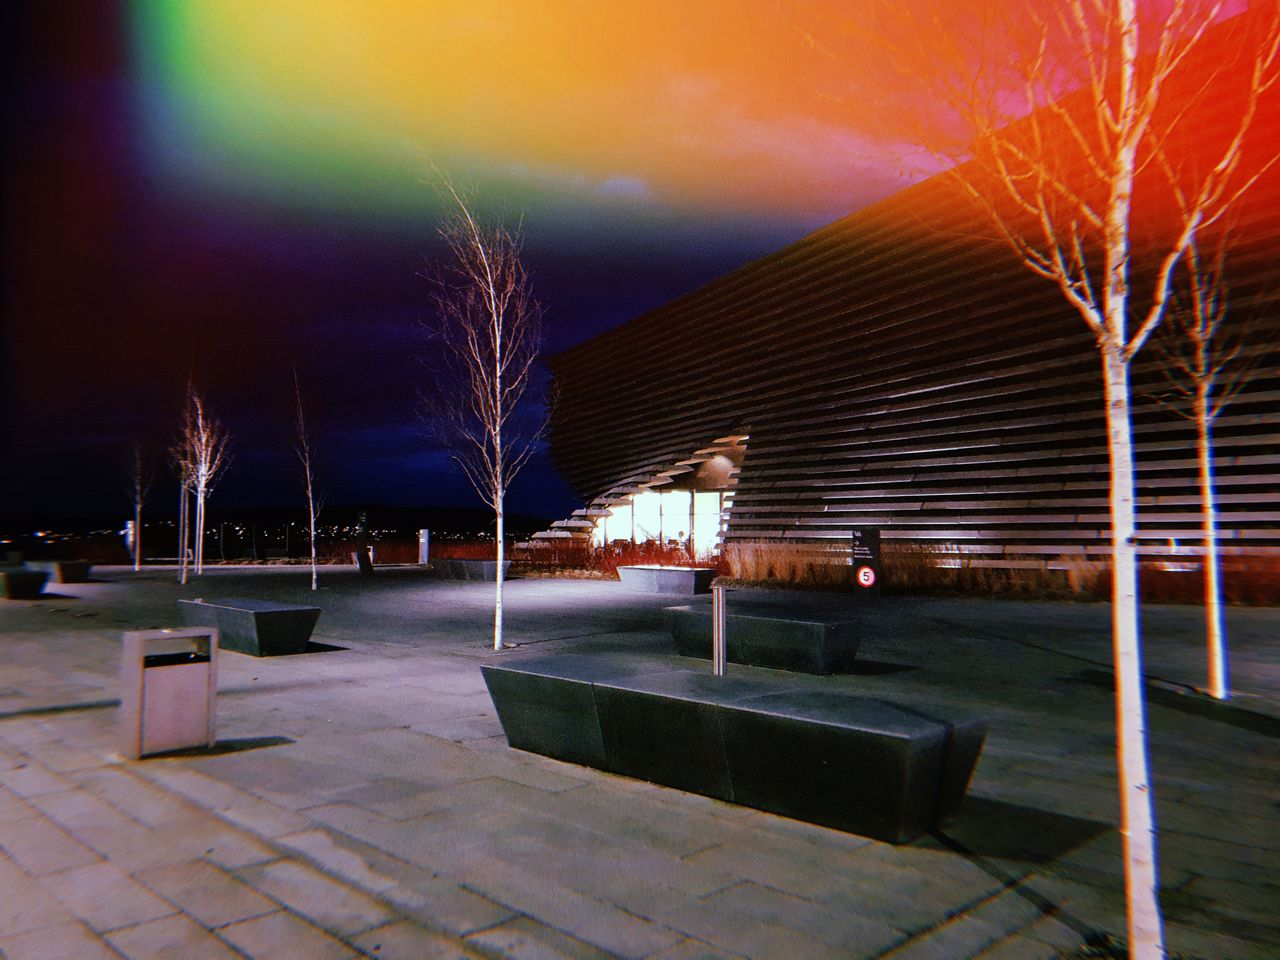 V&A Dundee at night, all dark with pockets of light.